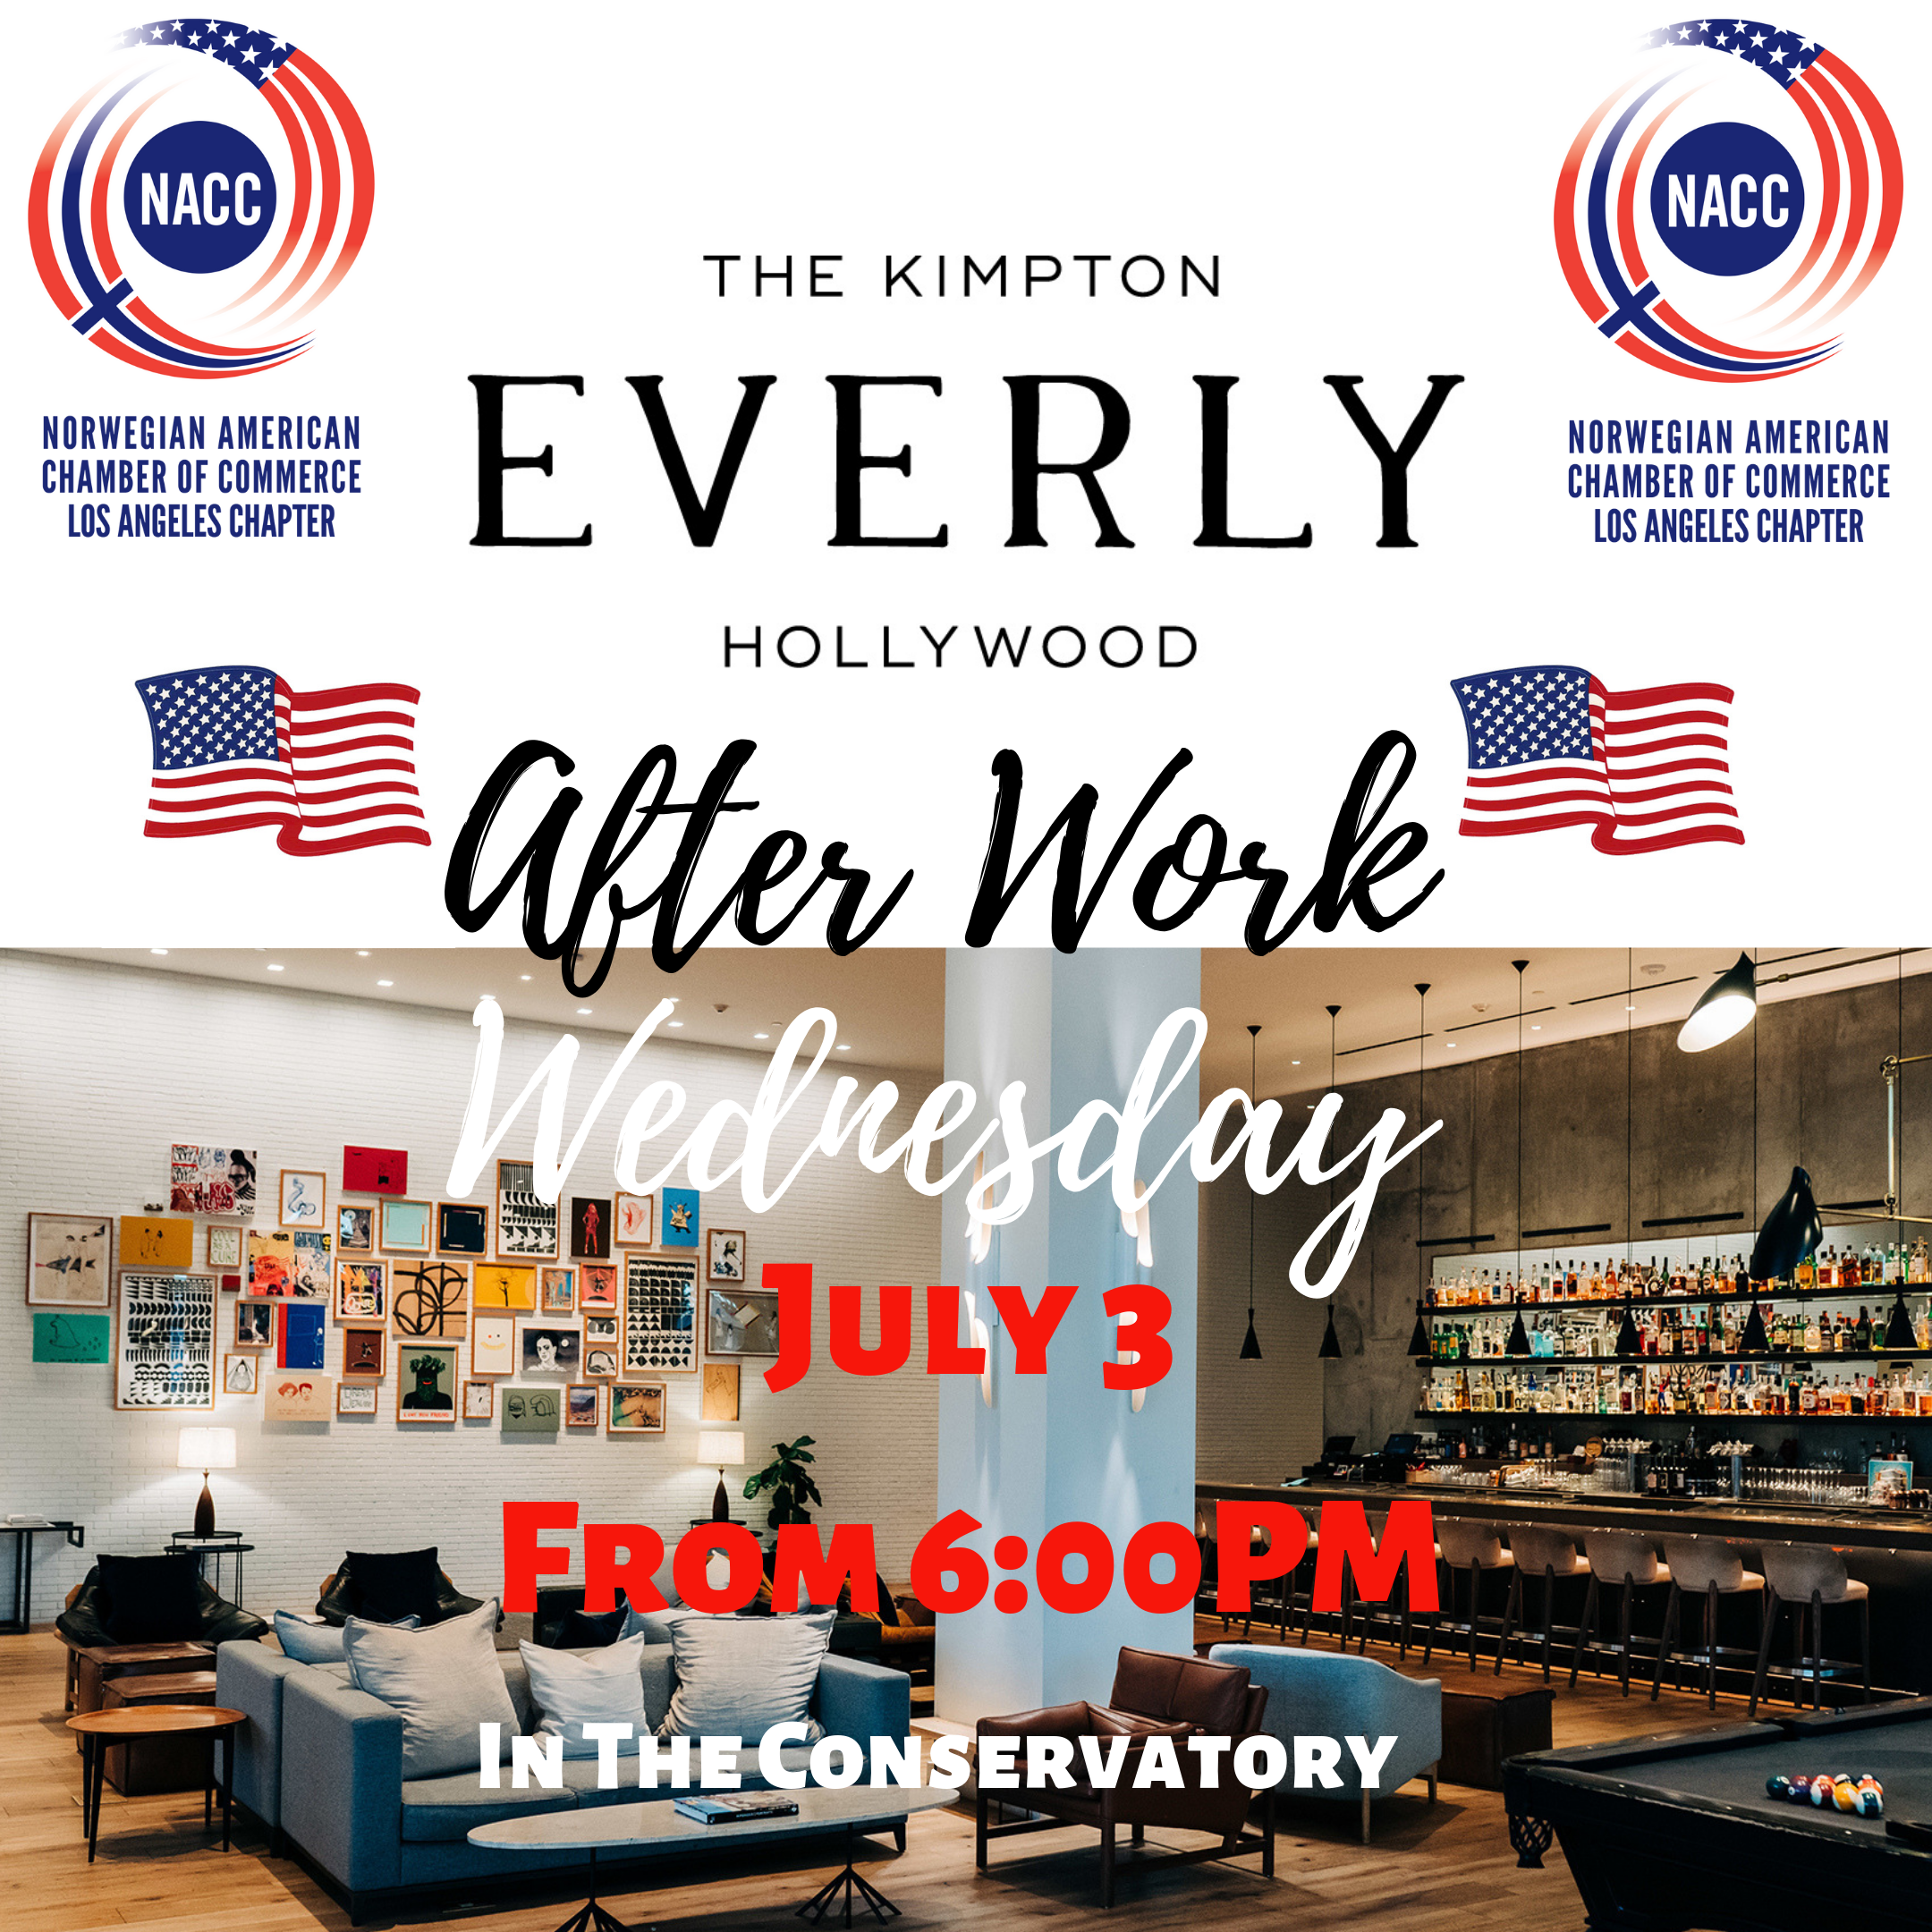 Kimpton Everly After Work Wednesday July 3 2019.png